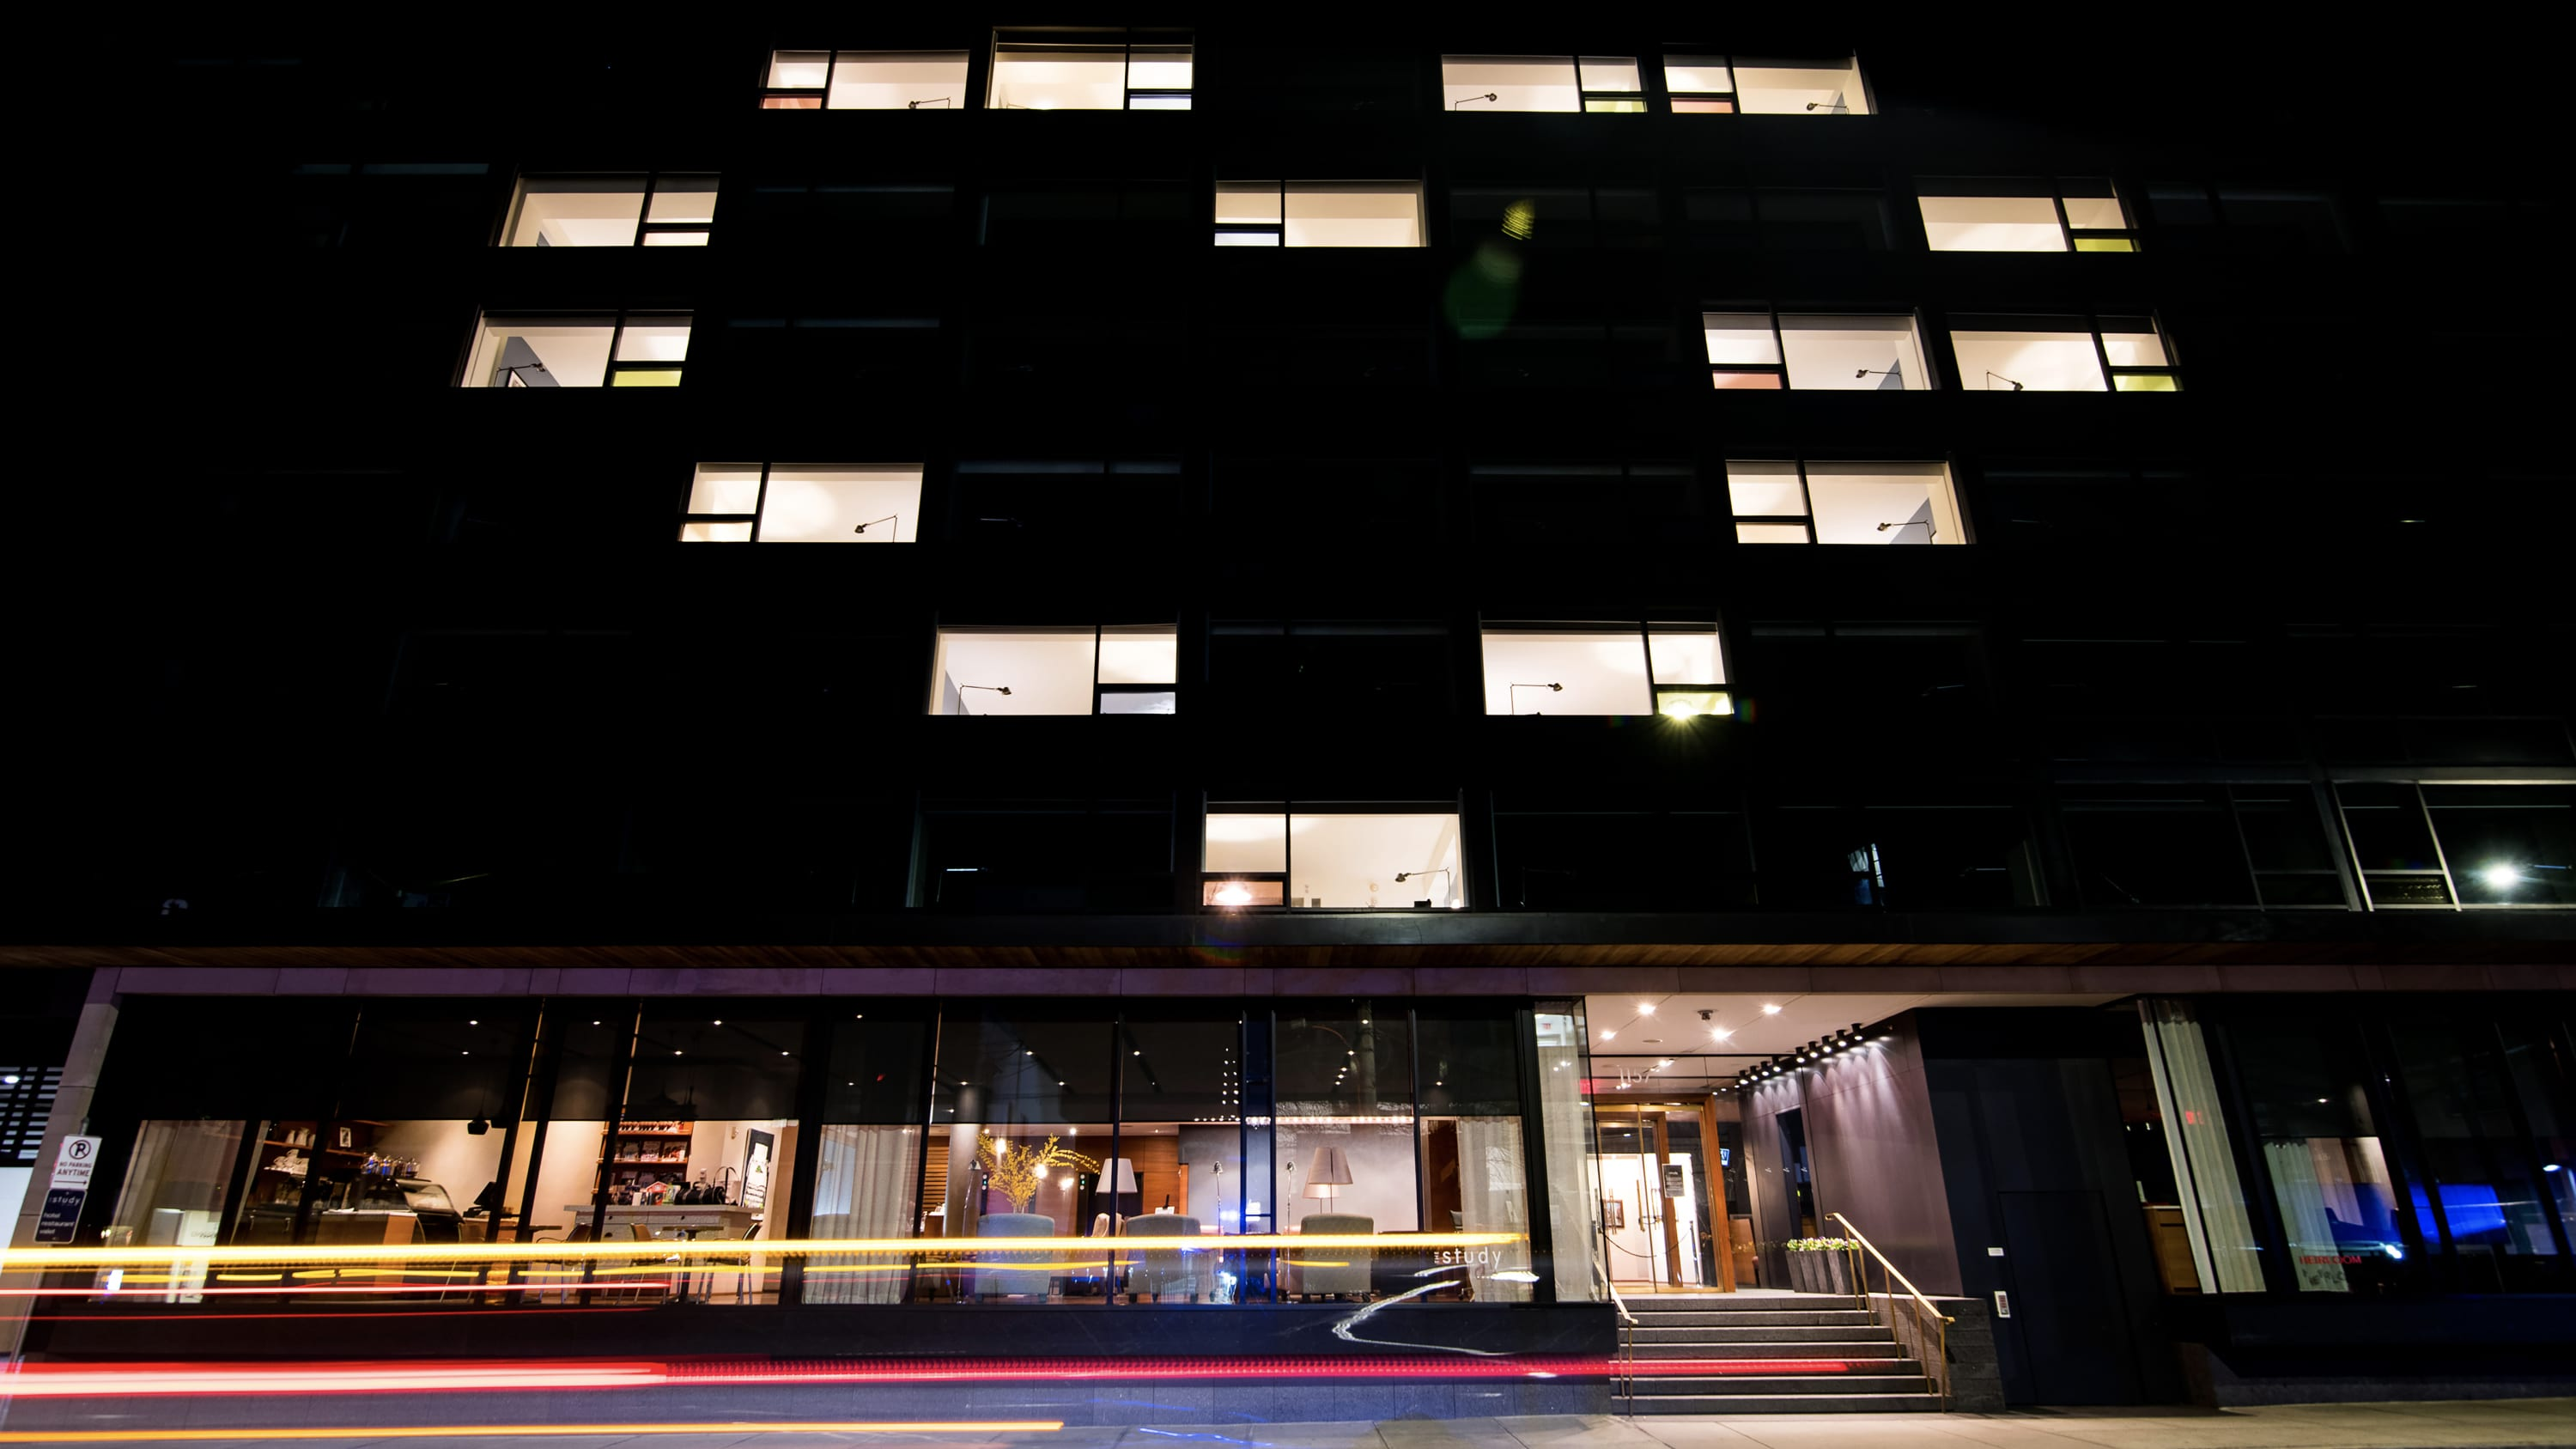 The Study at Yale hotel in New Haven lights up windows in a heart shape in support of health care workers during the COVID-19 pandemic